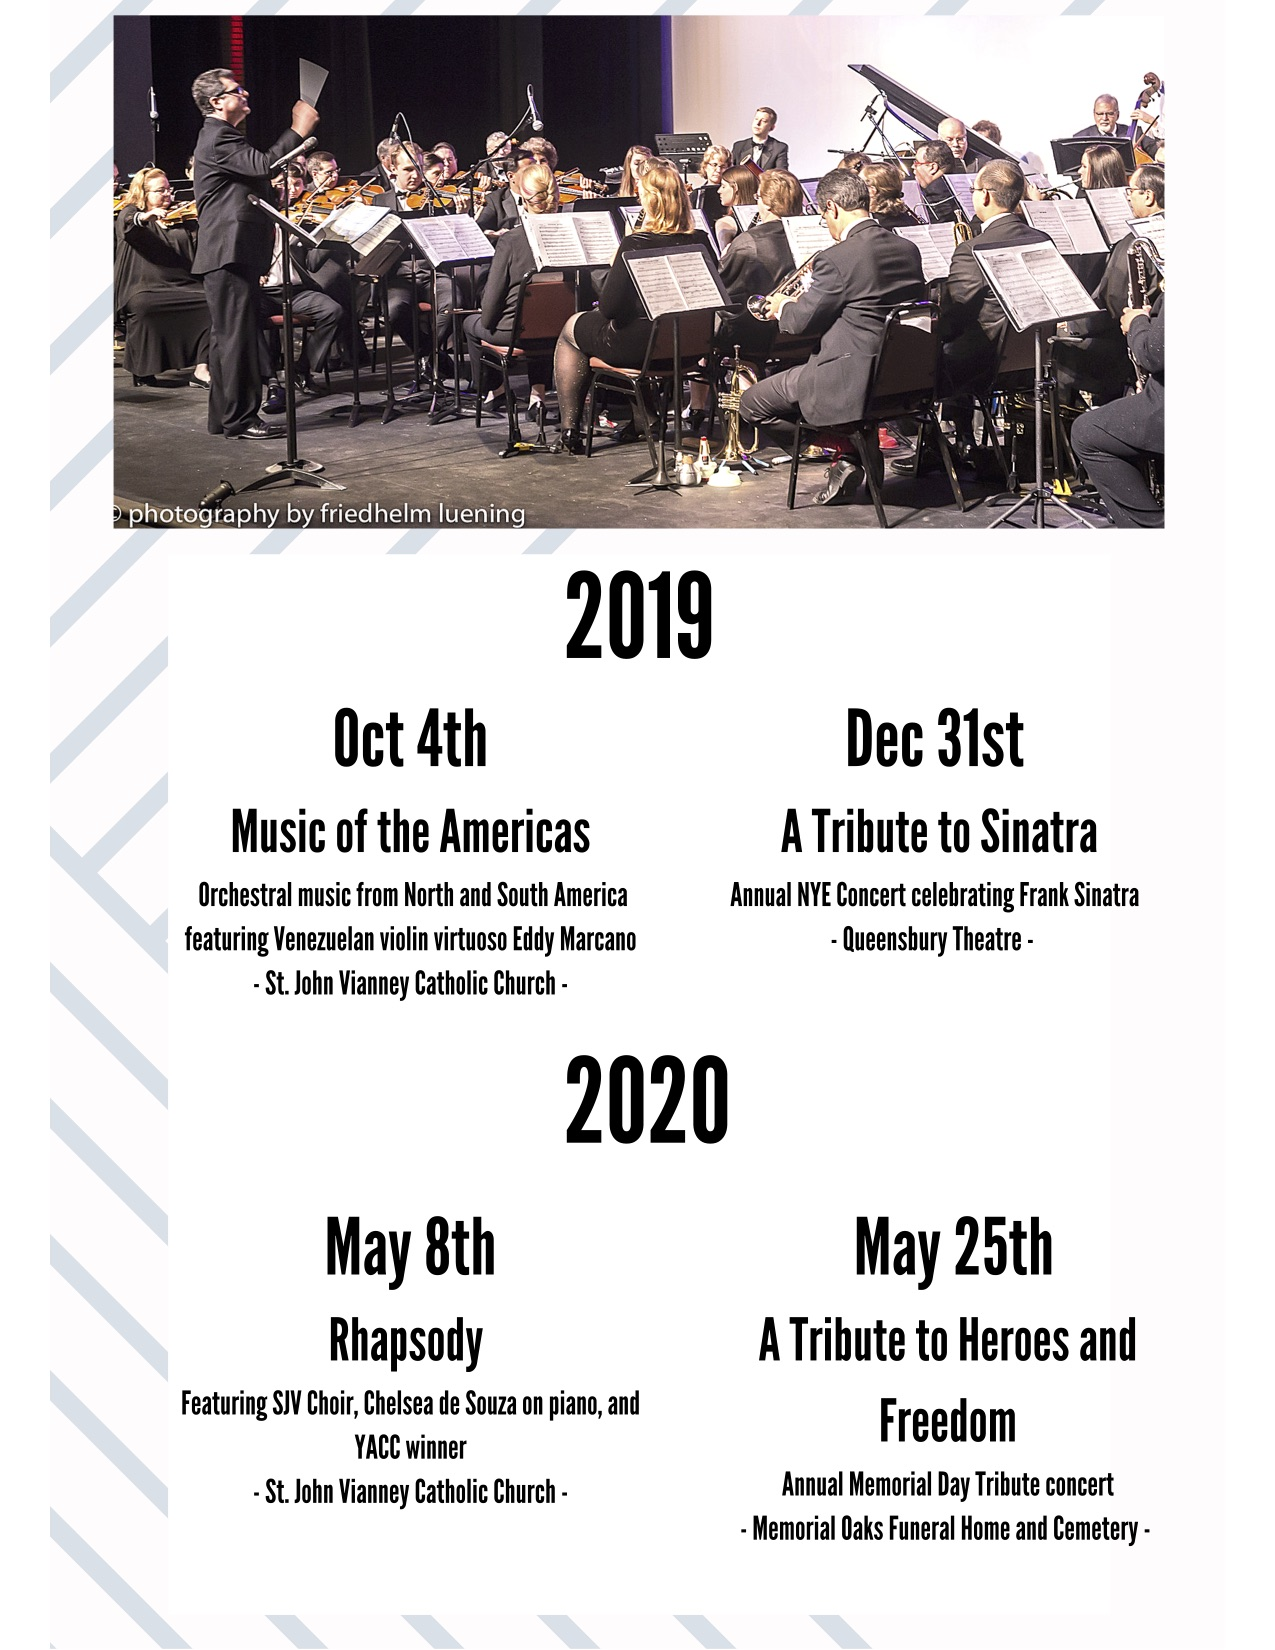 ECHO 6th Season 2019-2020 Picture of an orchestra playing music